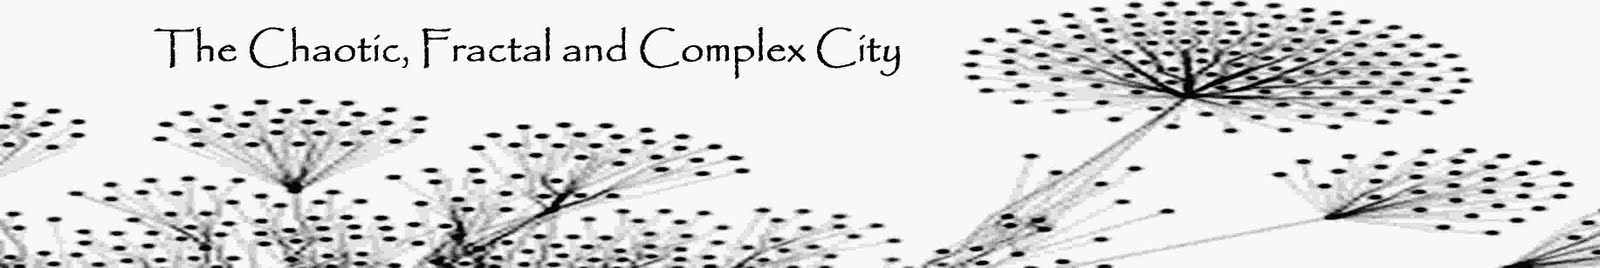 The Chaotic, Fractal, and Complex City